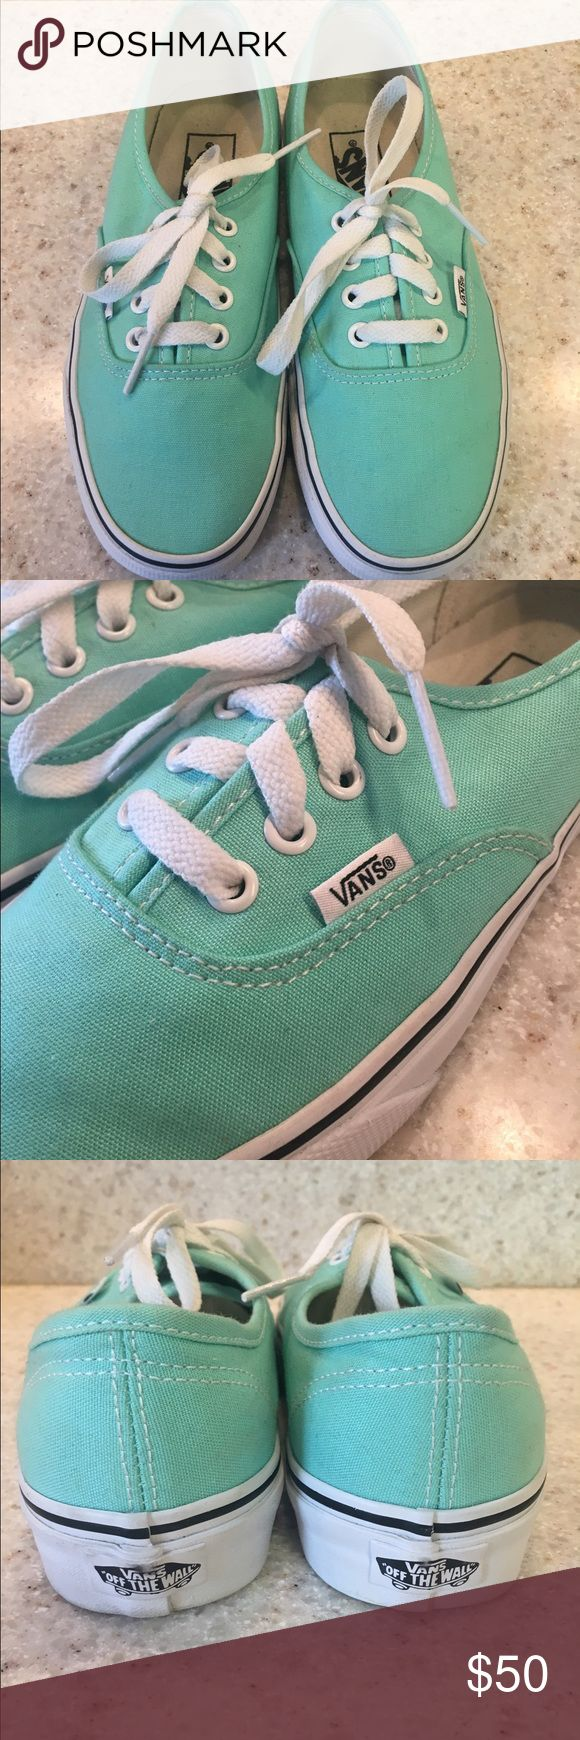 Vans Mint Green, Size 7, Good condition- worn once Shoes Sneakers